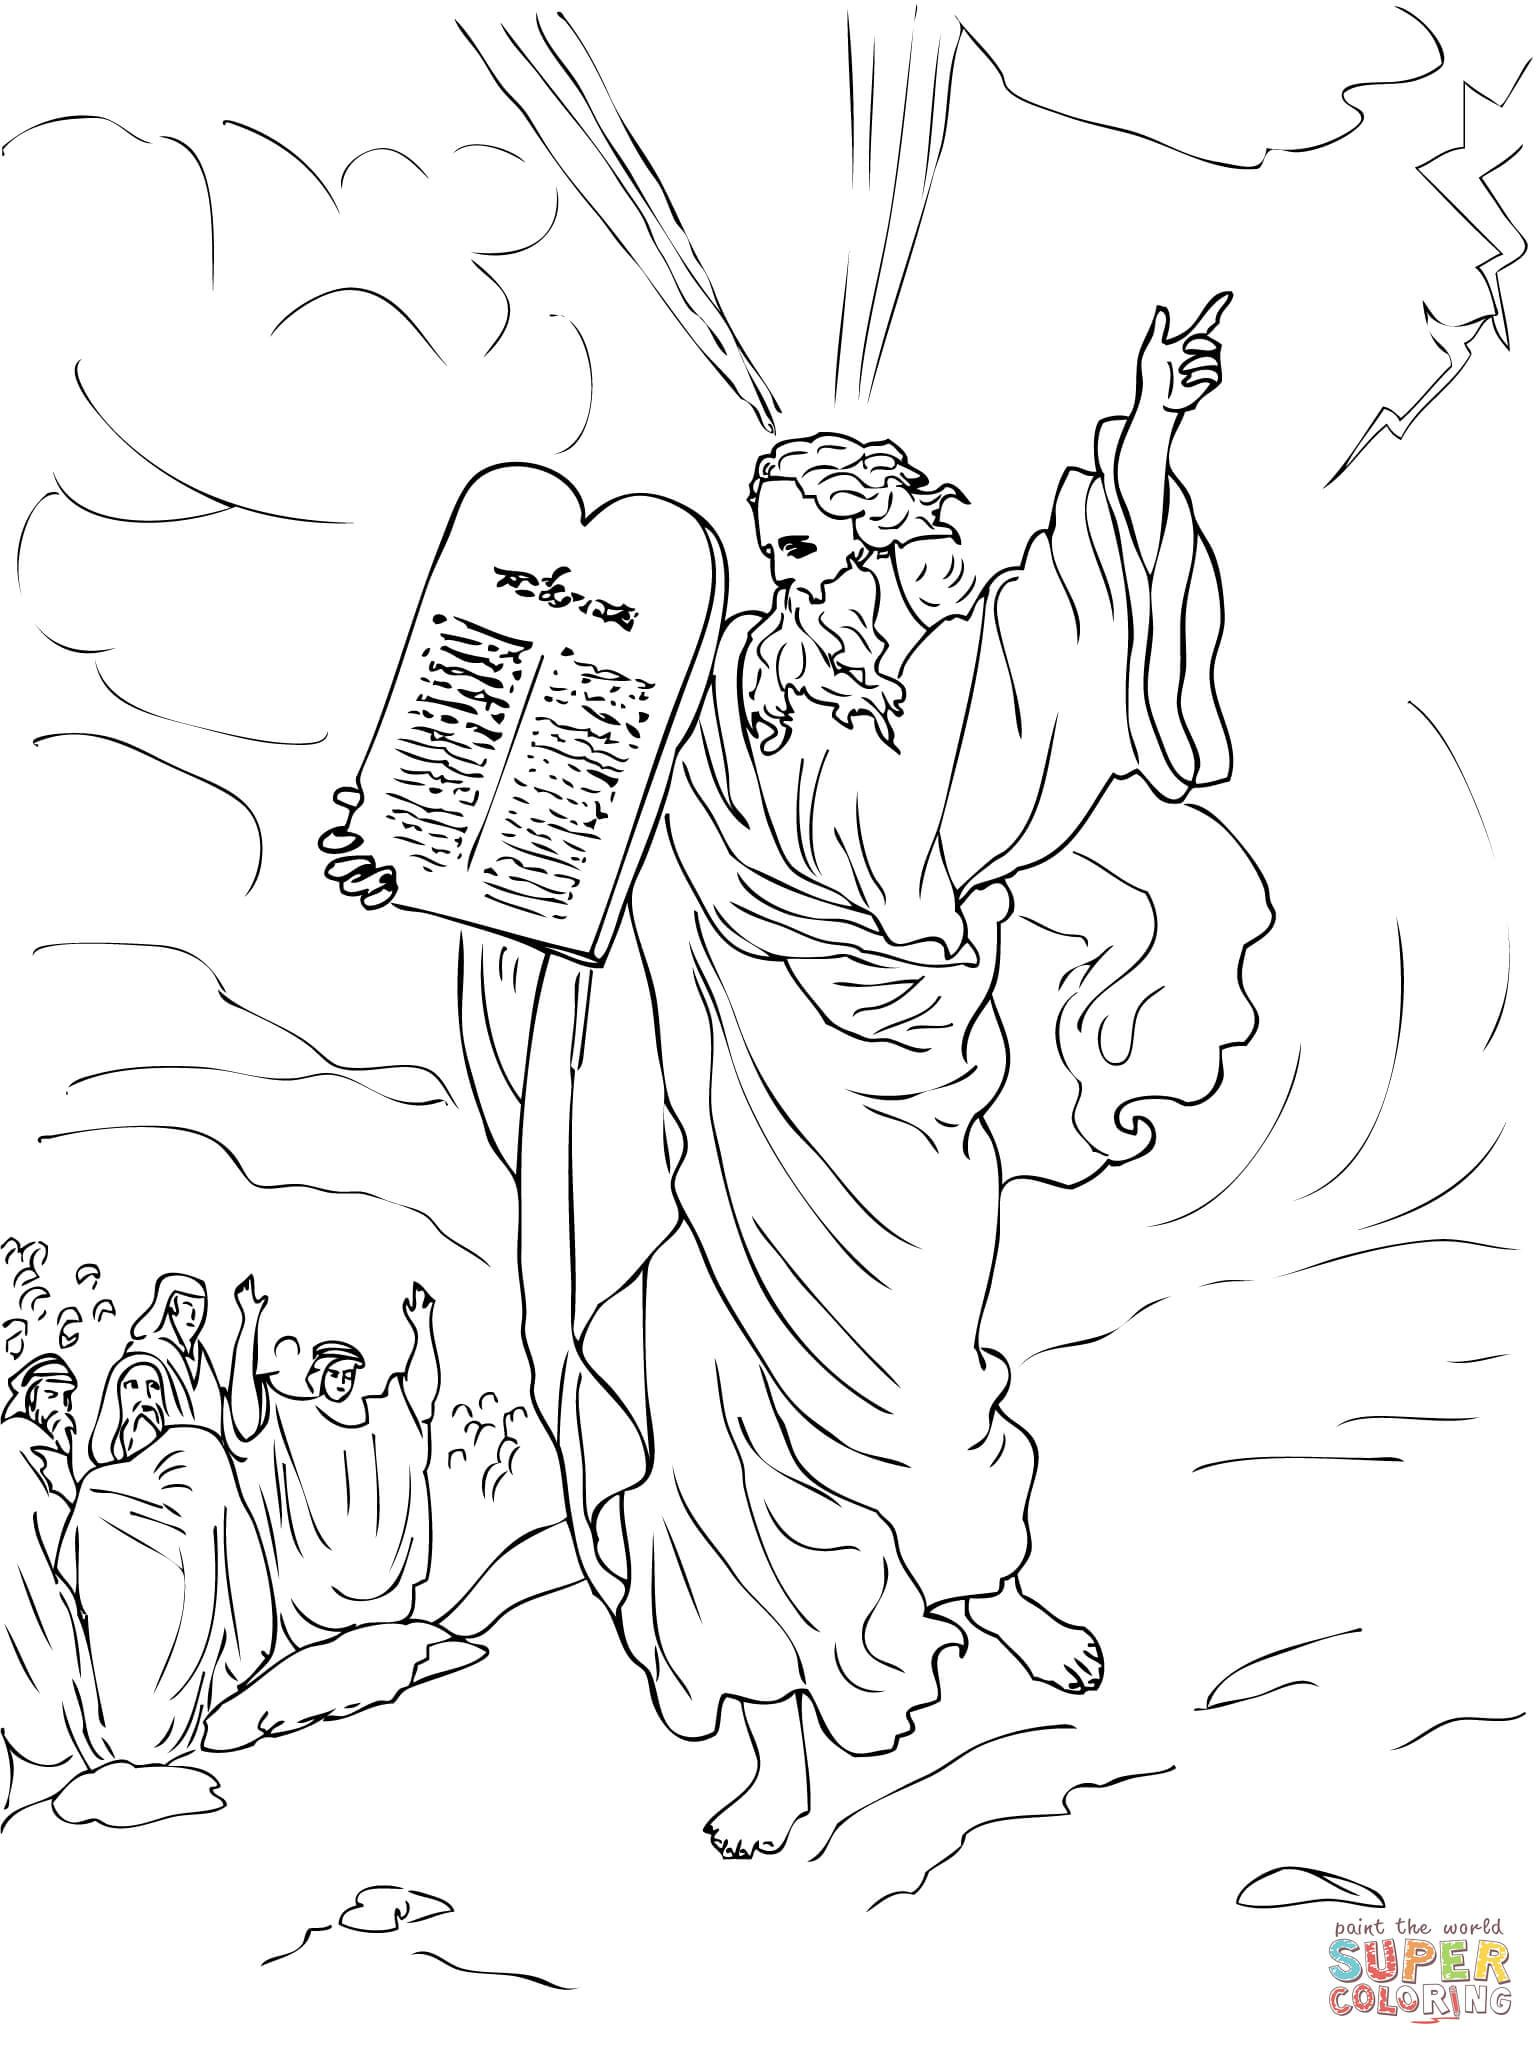 Coloring Sheet The Jews Standing Around Mount Sinai As They Receive The 10 Commandments Coloring Sheets Coloring Pages Printable Coloring Pages